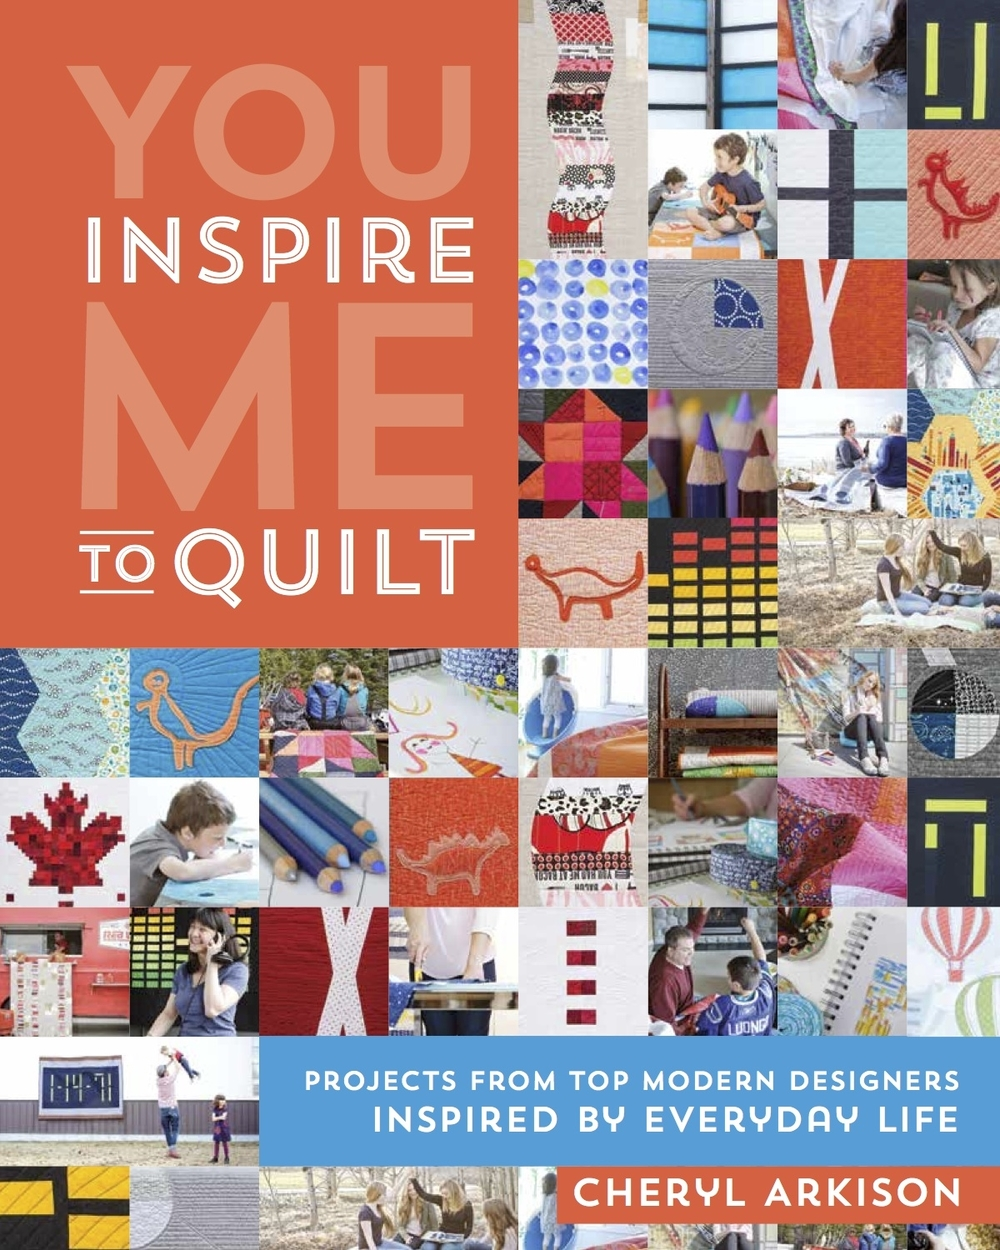 Turn inspiration from your daily life into meaningful and fun quilt designs.  Popular quilt designers share 10 complete quilt patterns, plus advice and wisdom on the art of quilt making. See how ideas from people, places, and things become original design concepts. Inclides compelling designs from Jen Carlton-Bailly, Cynthia Frenette, Carolyn Friedlander, Andrea Harris, Rossie Hutchinson, Heather Jones, Amanda Jean Nyberg, and Blair Stocker. Ask for You Inspire Me To Quilt in your local quilt shop or pick it up online. *I am available for retreats and workshops to help you create your unique design.